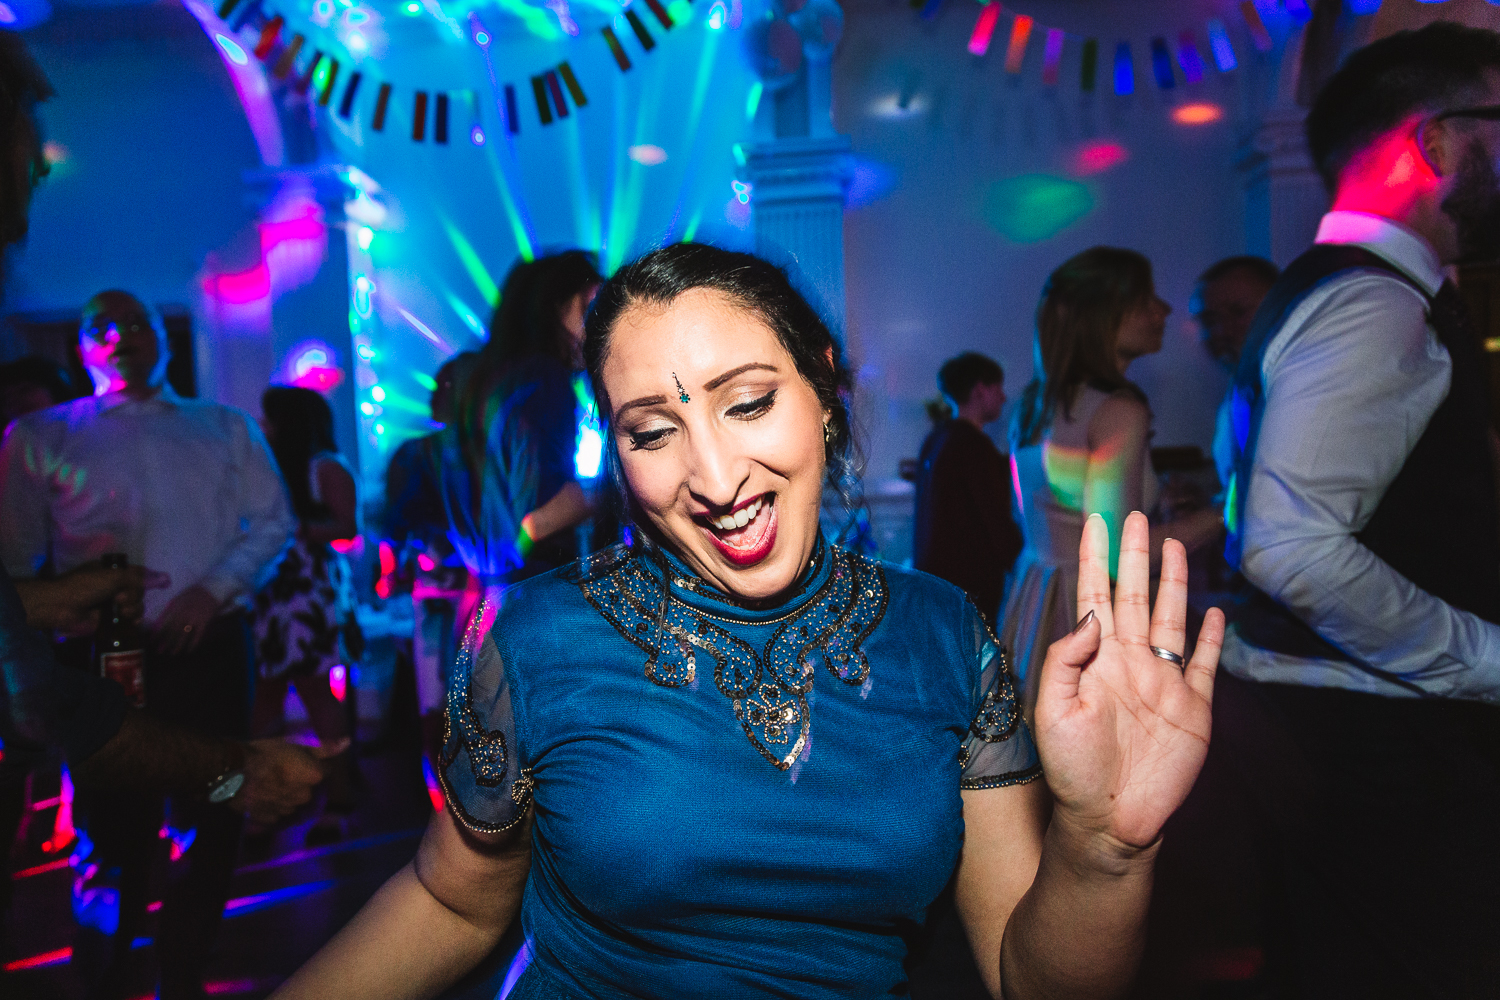 A photo of a woman in blue with a gem on her forehead having fun singing and dancing at a Worcestershire wedding